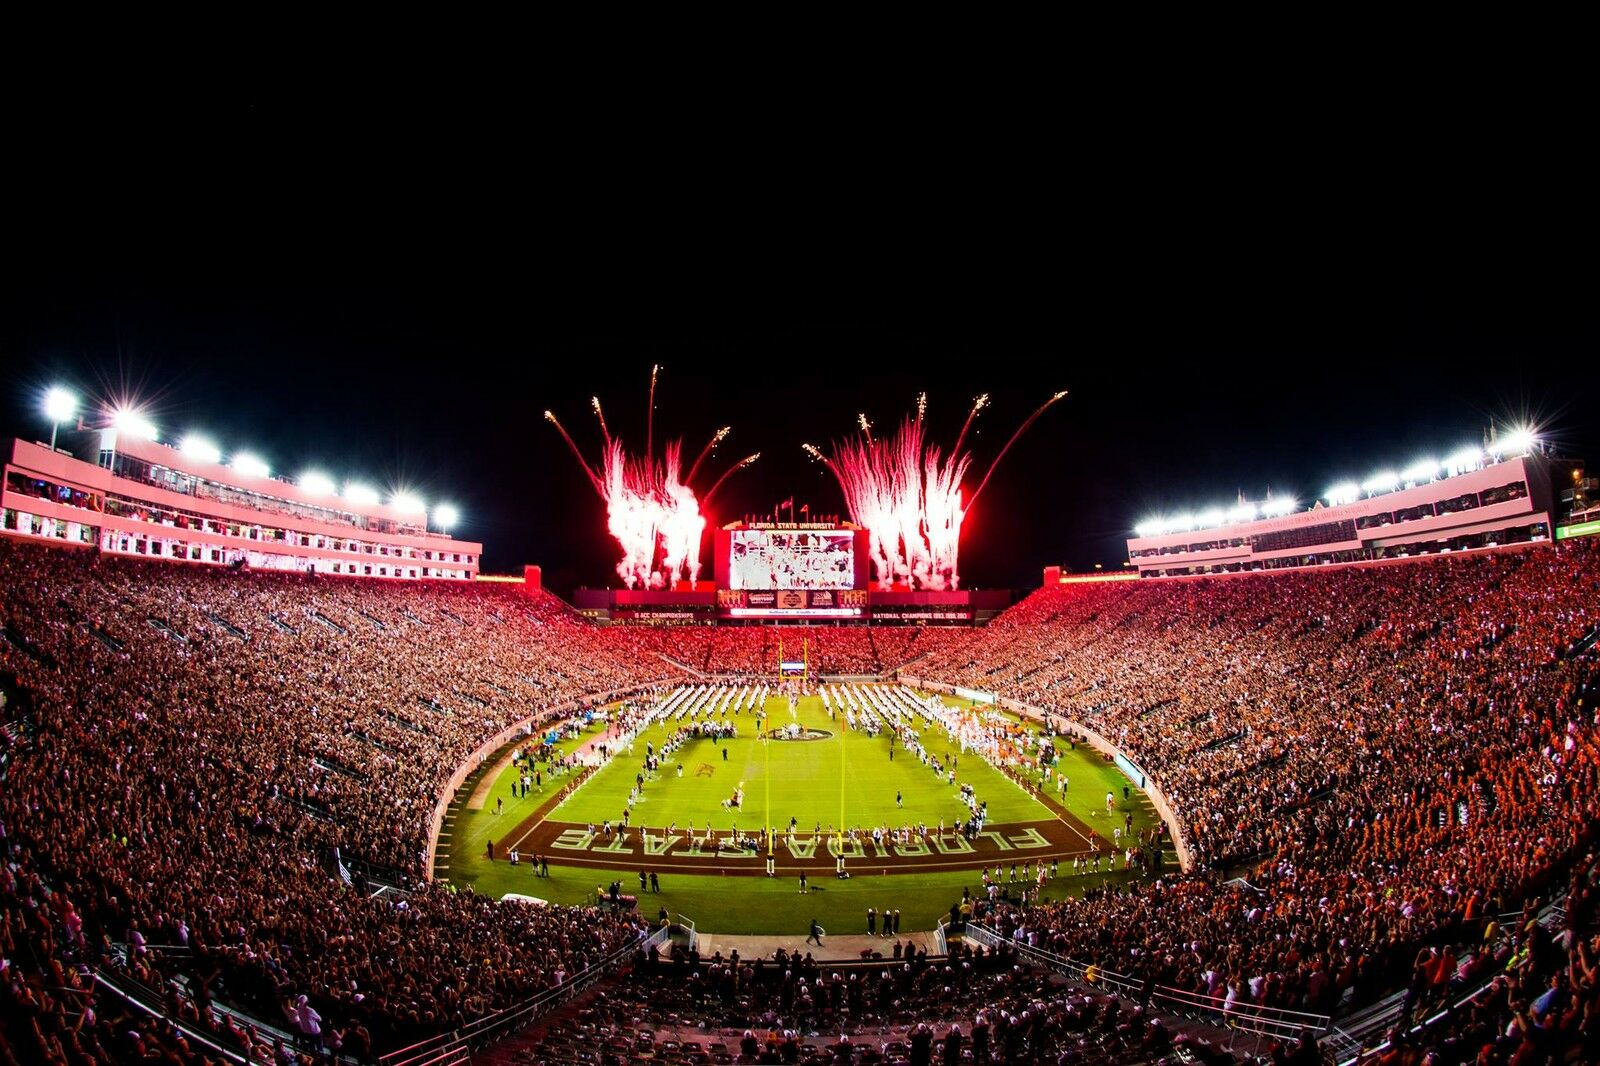 PARKING PASSES ONLY 2018 Florida State Seminoles Football Season Tickets - Season Package